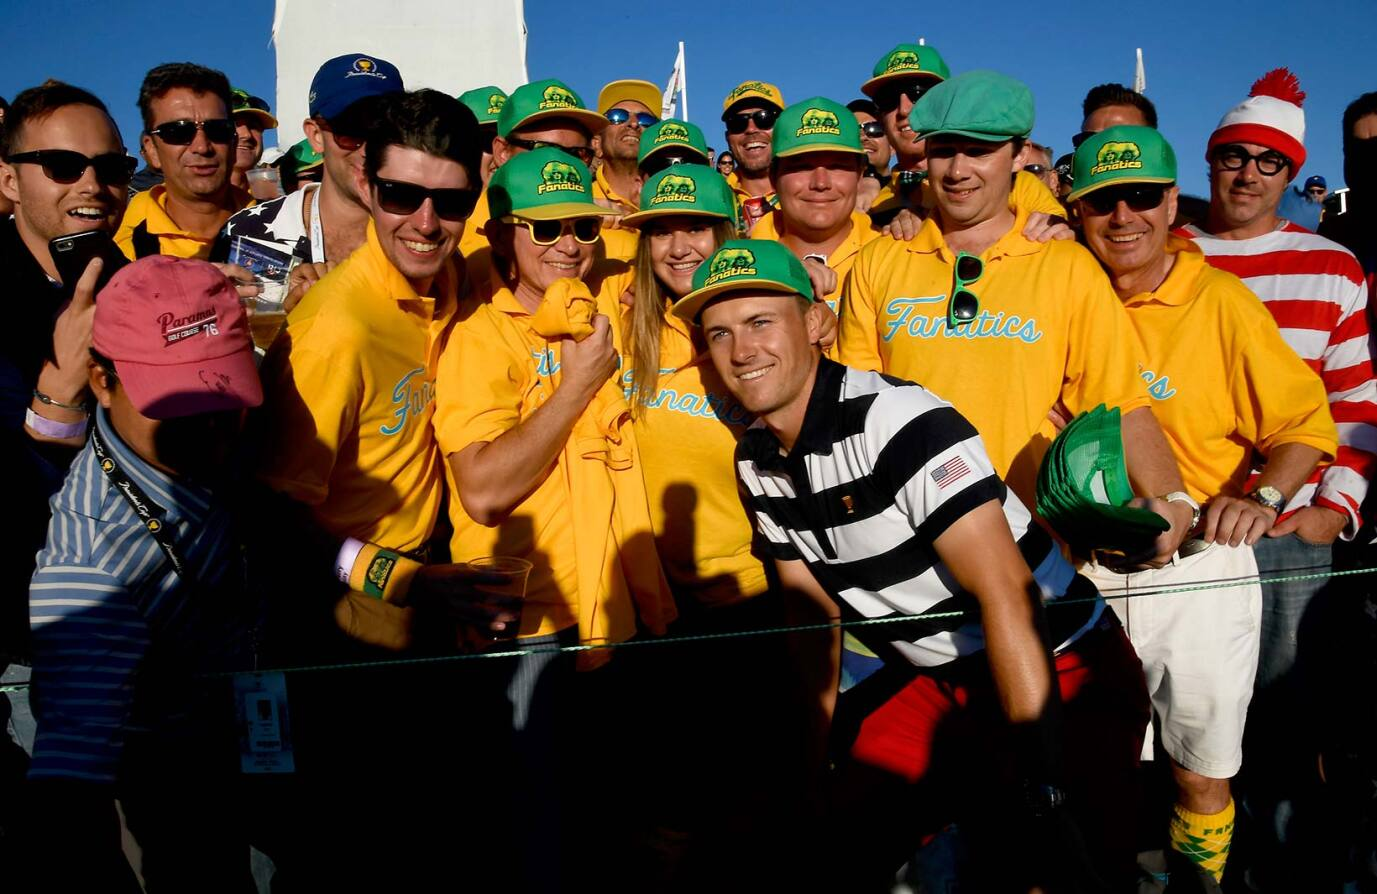 2017 Presidents Cup: Final Round - Jordan Poses With the Fanatics